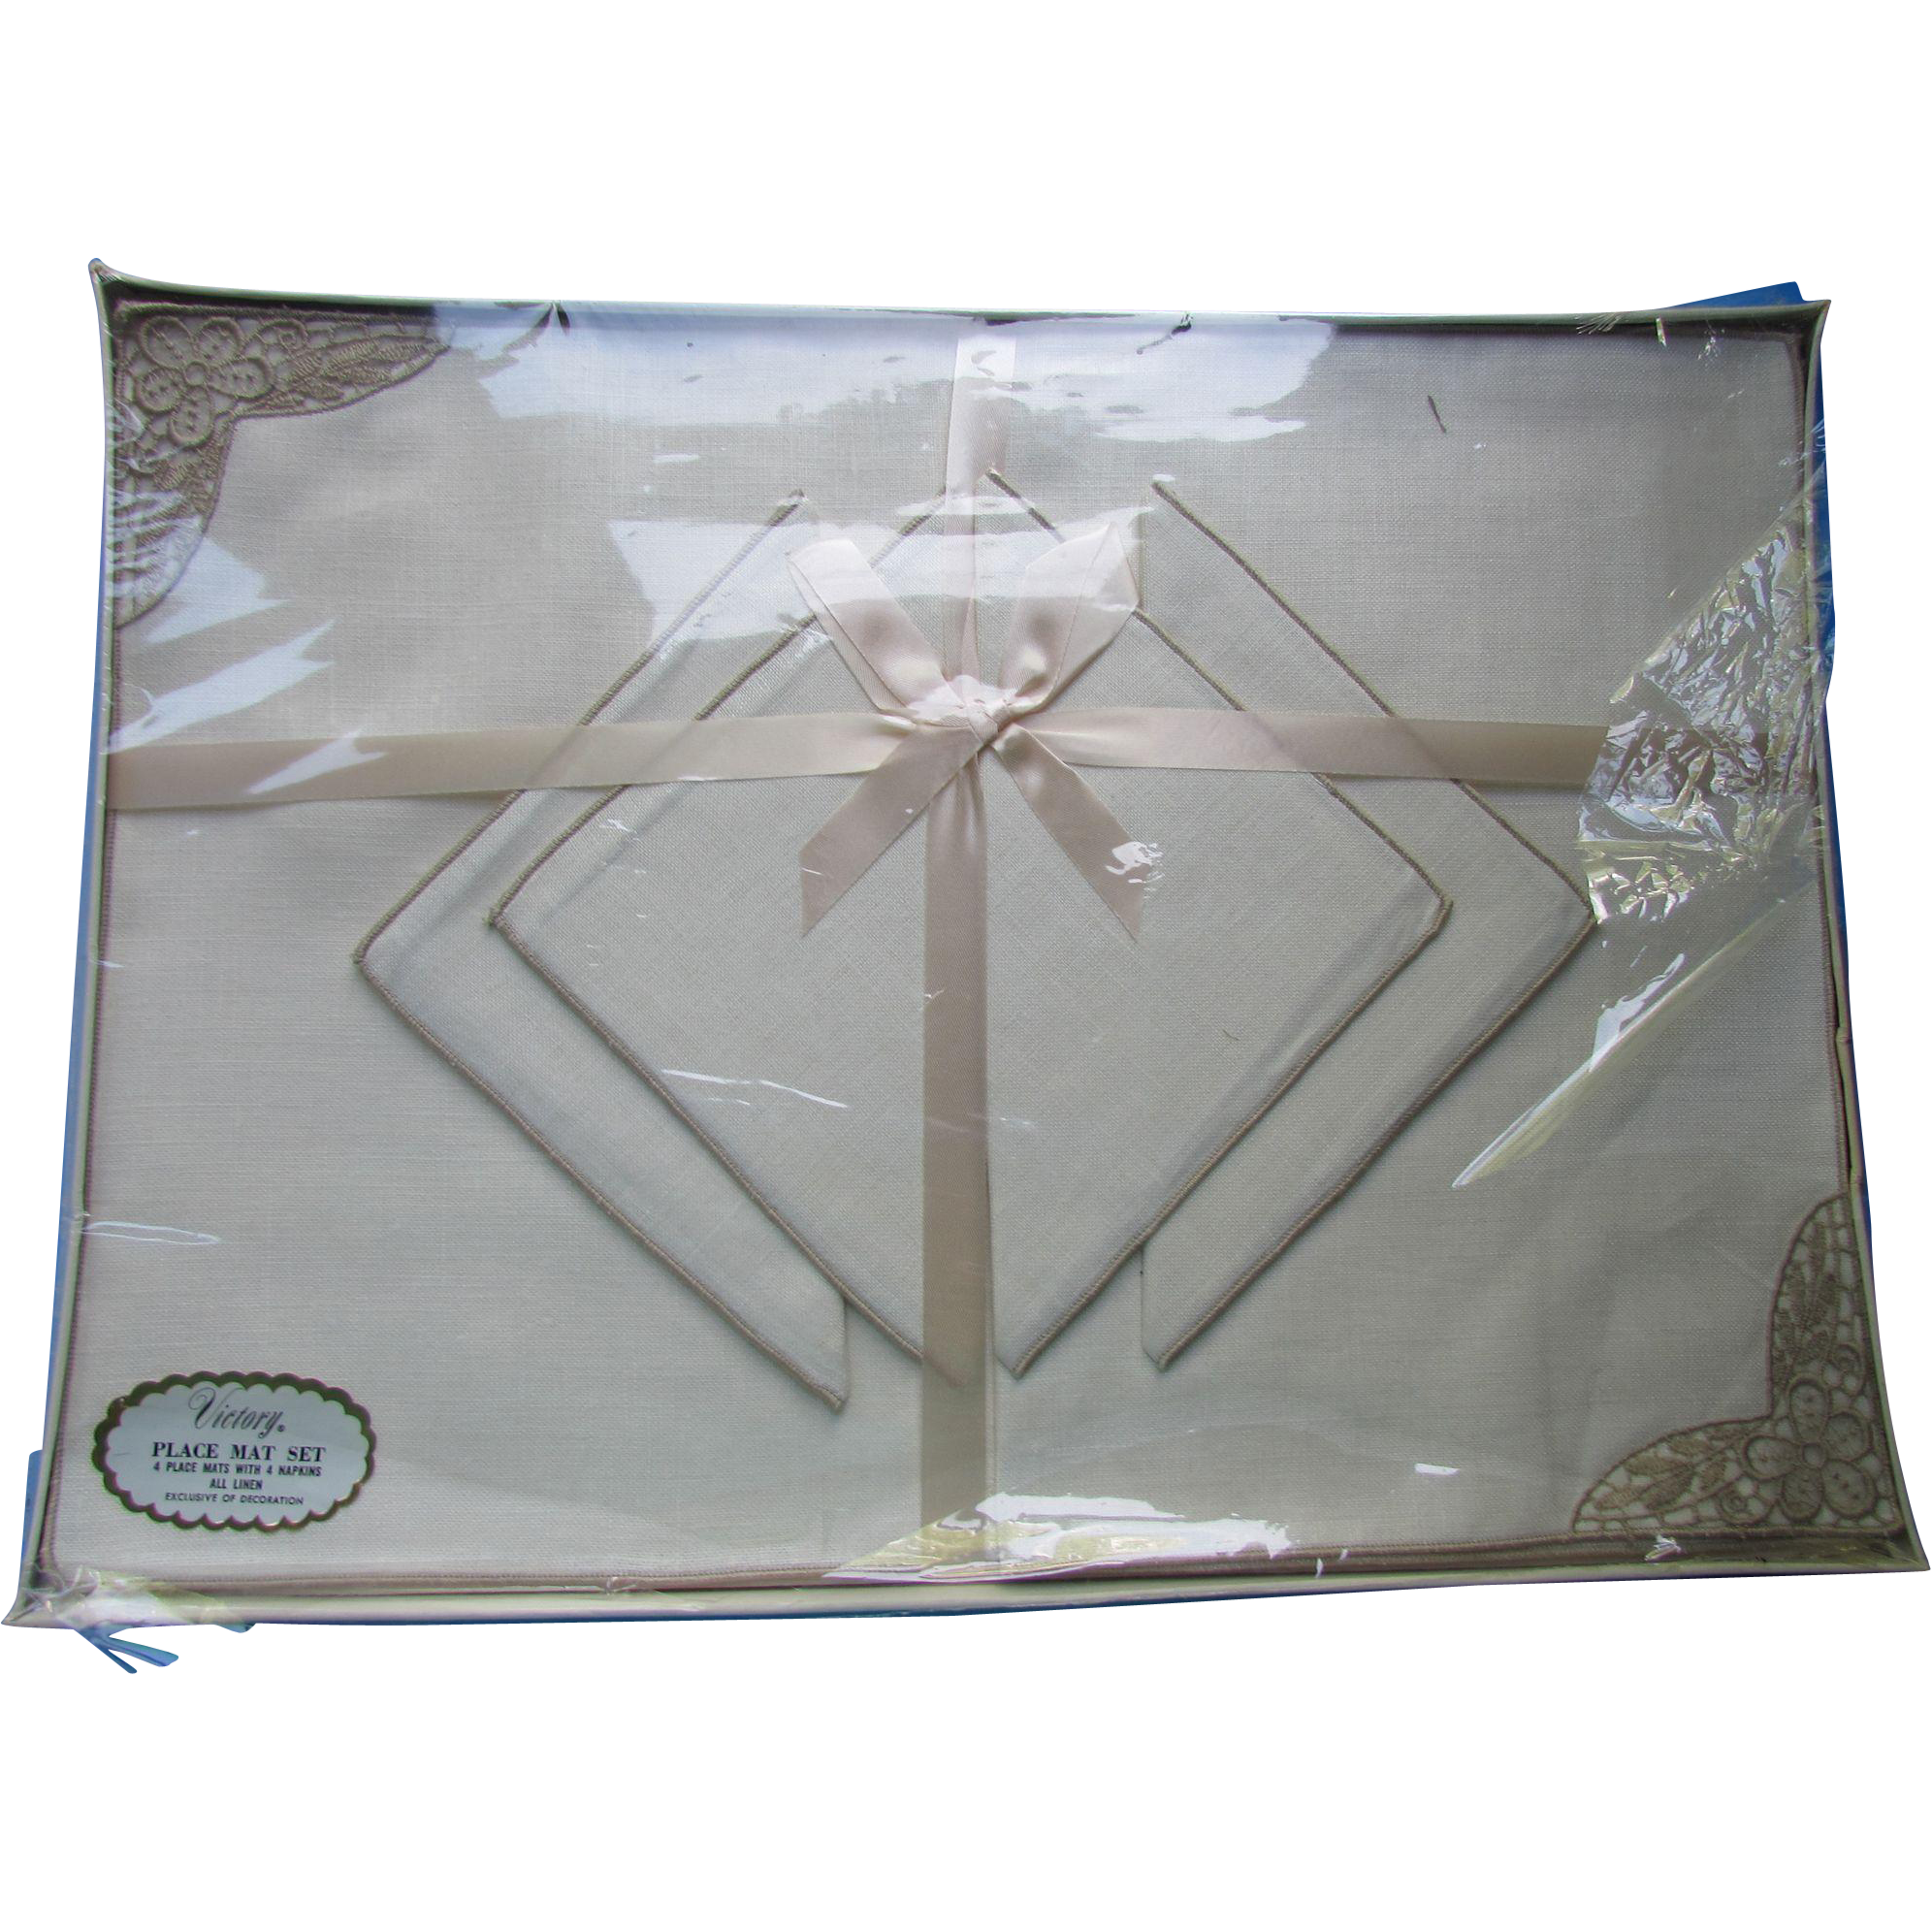 Vintage Victory Linen Place Mat and Napkin Set in Original Packaging Unused Stock